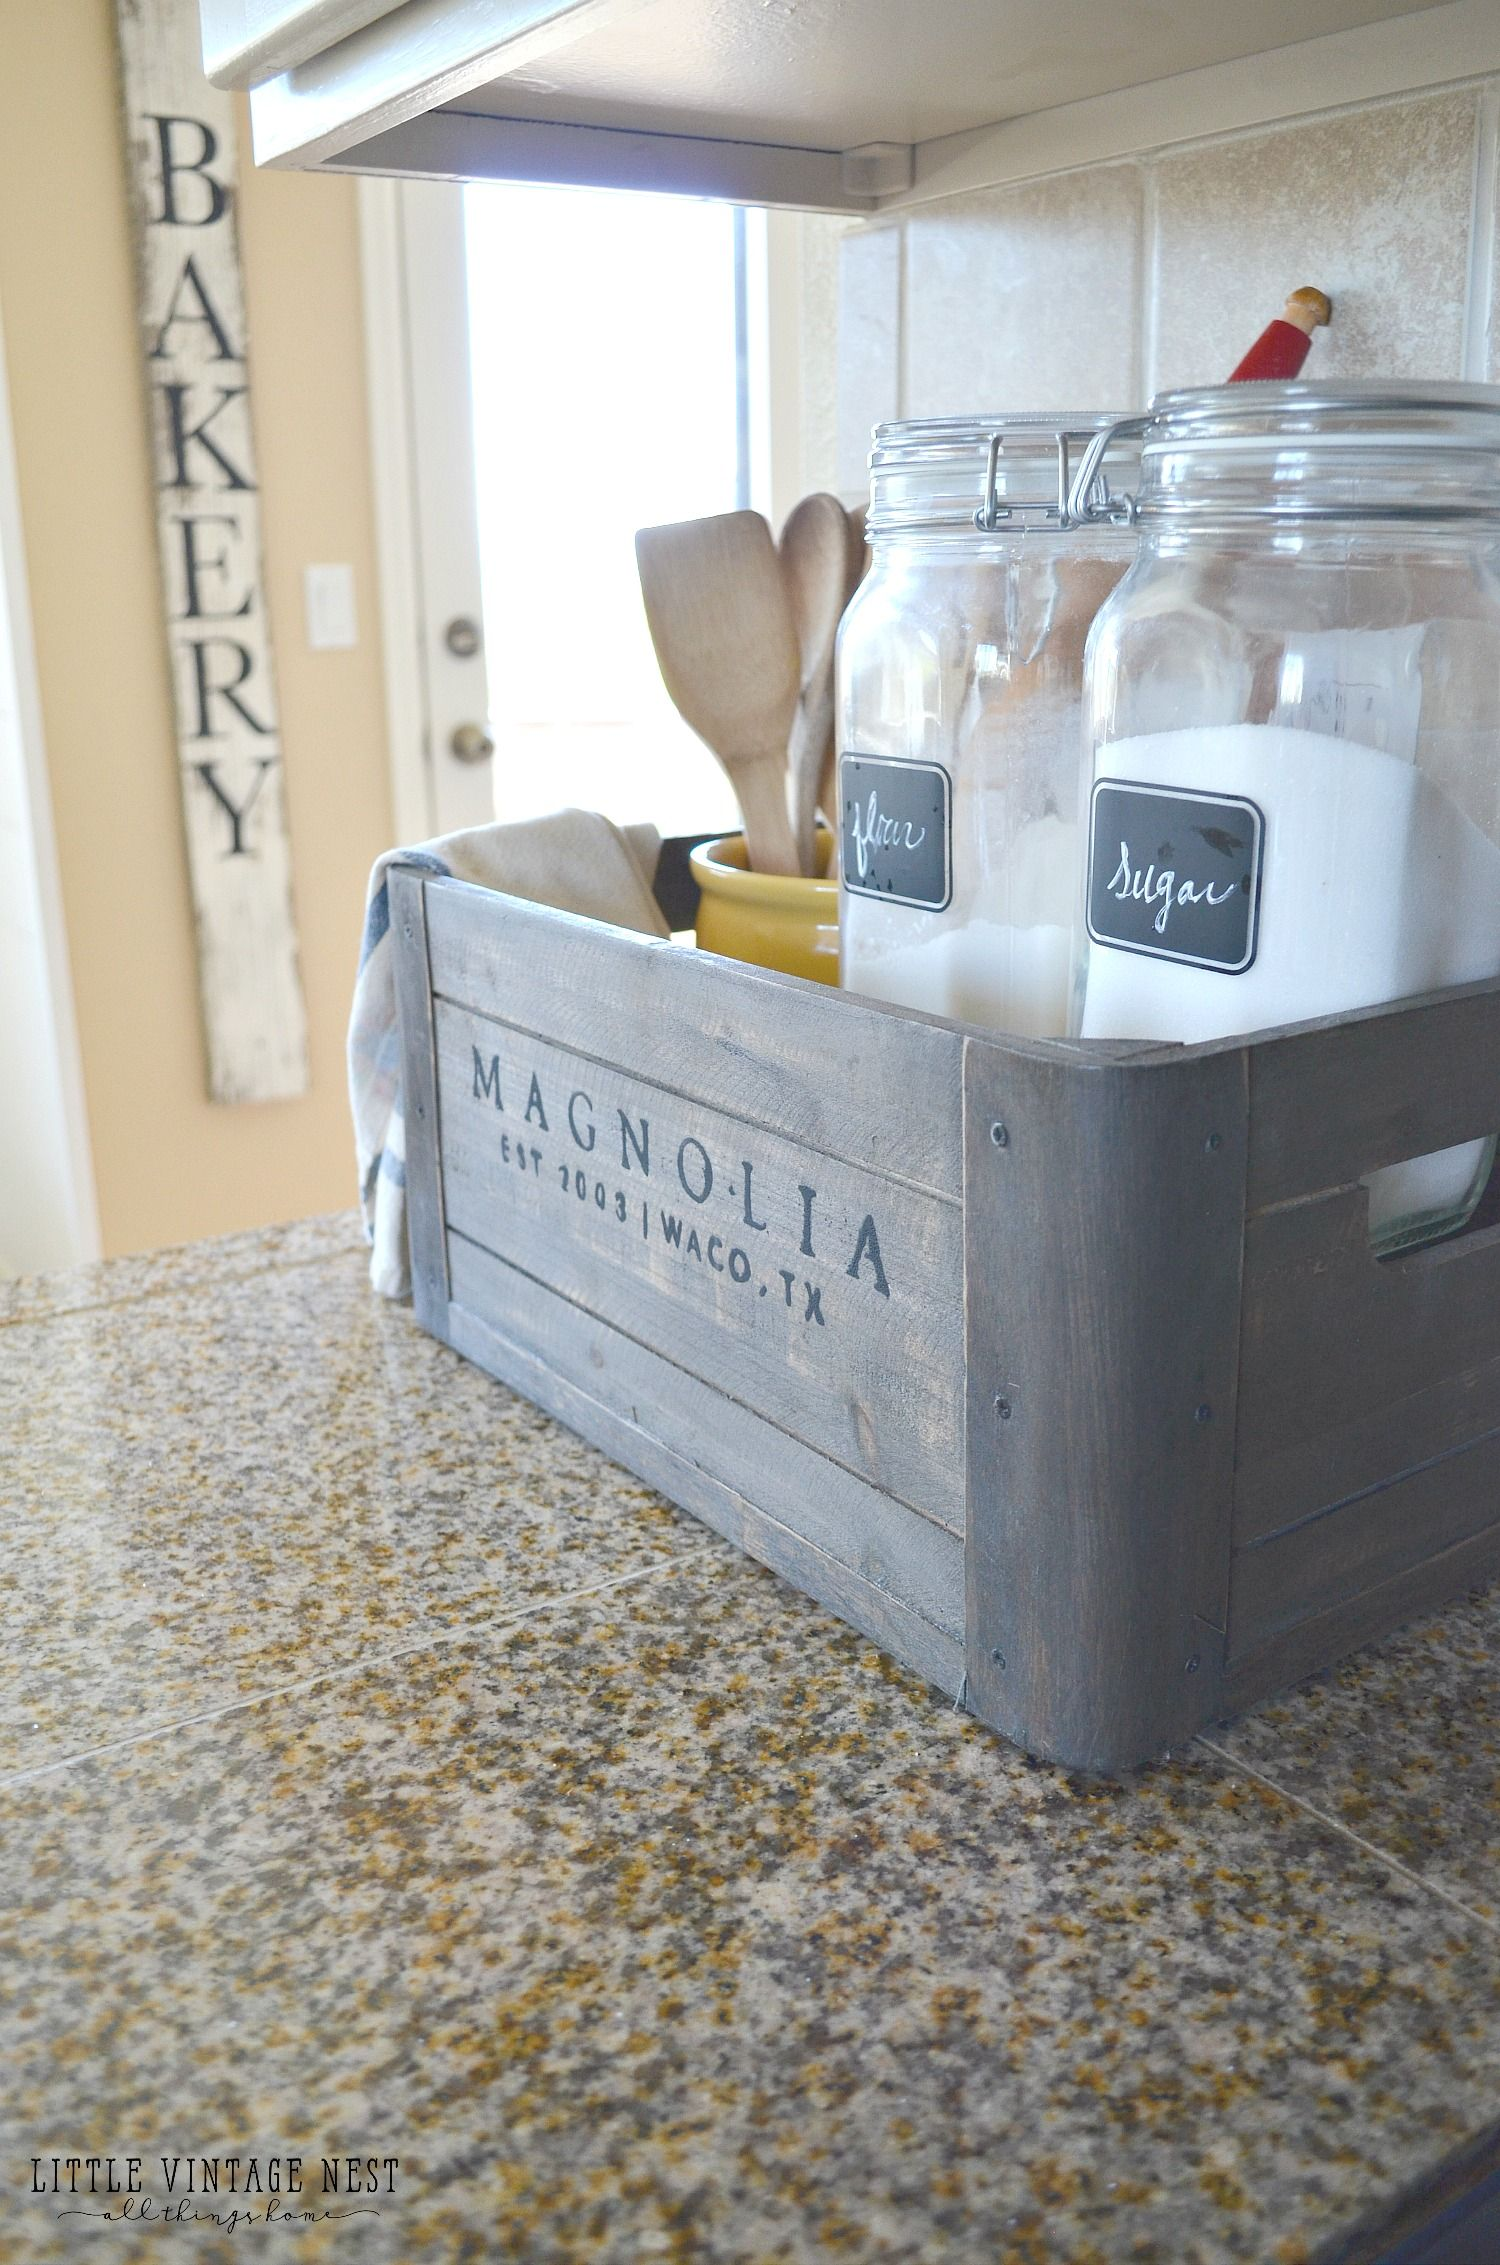 5 Ways to Style a Wooden Crate | Farmhouse kitchen decor, Wooden ...